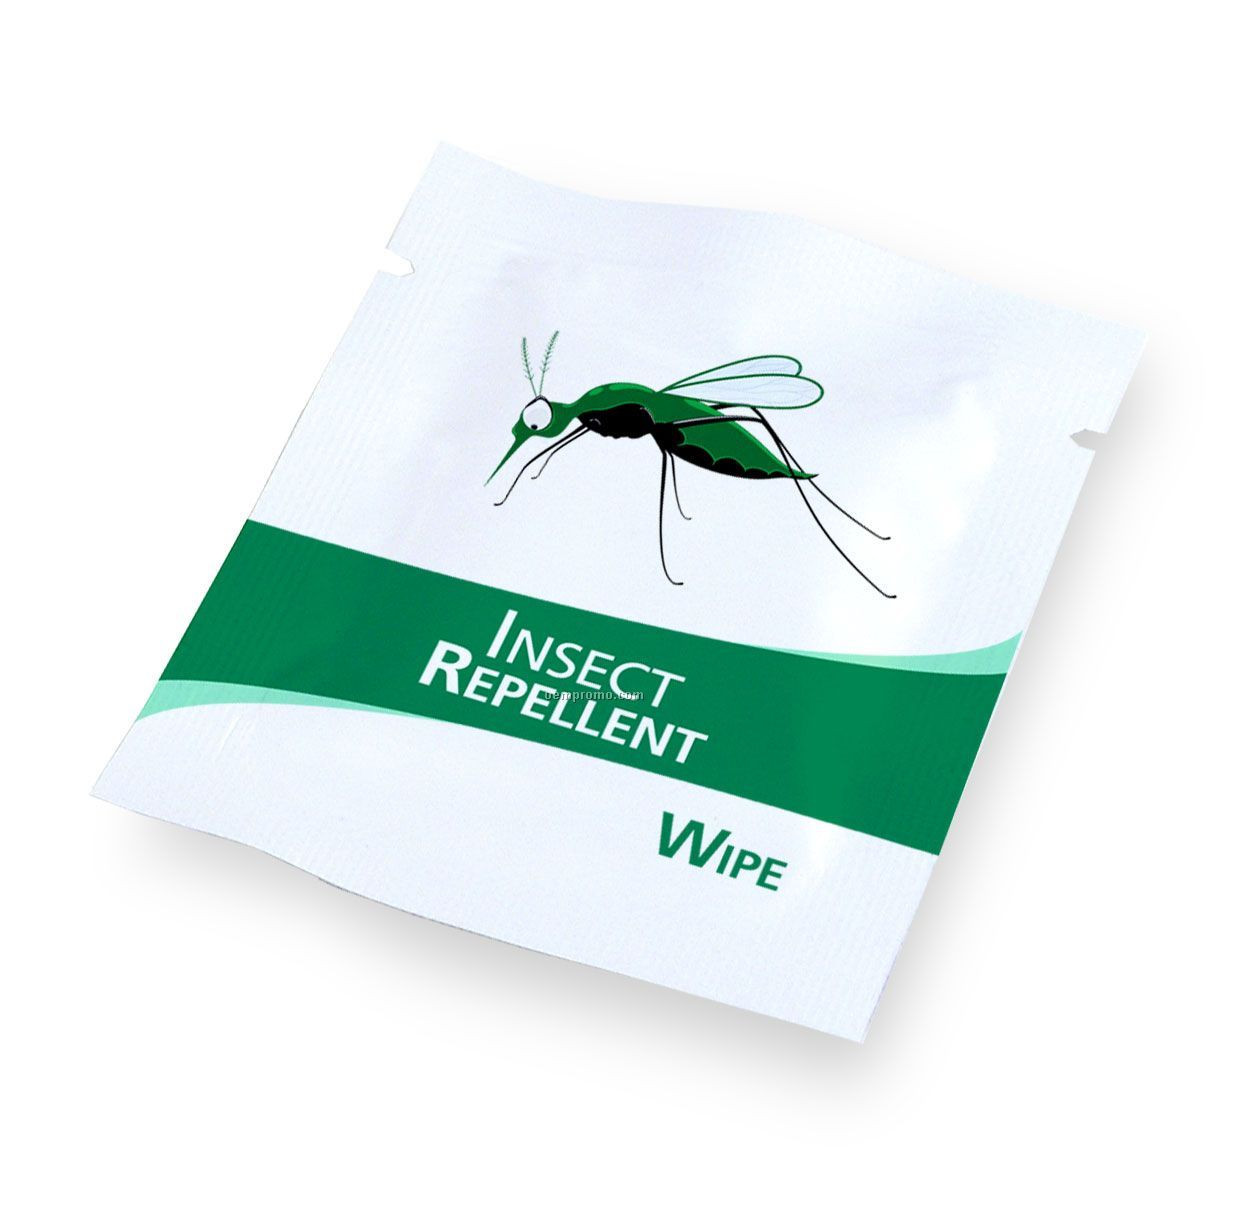 Insect Repellent Wipe - Stock